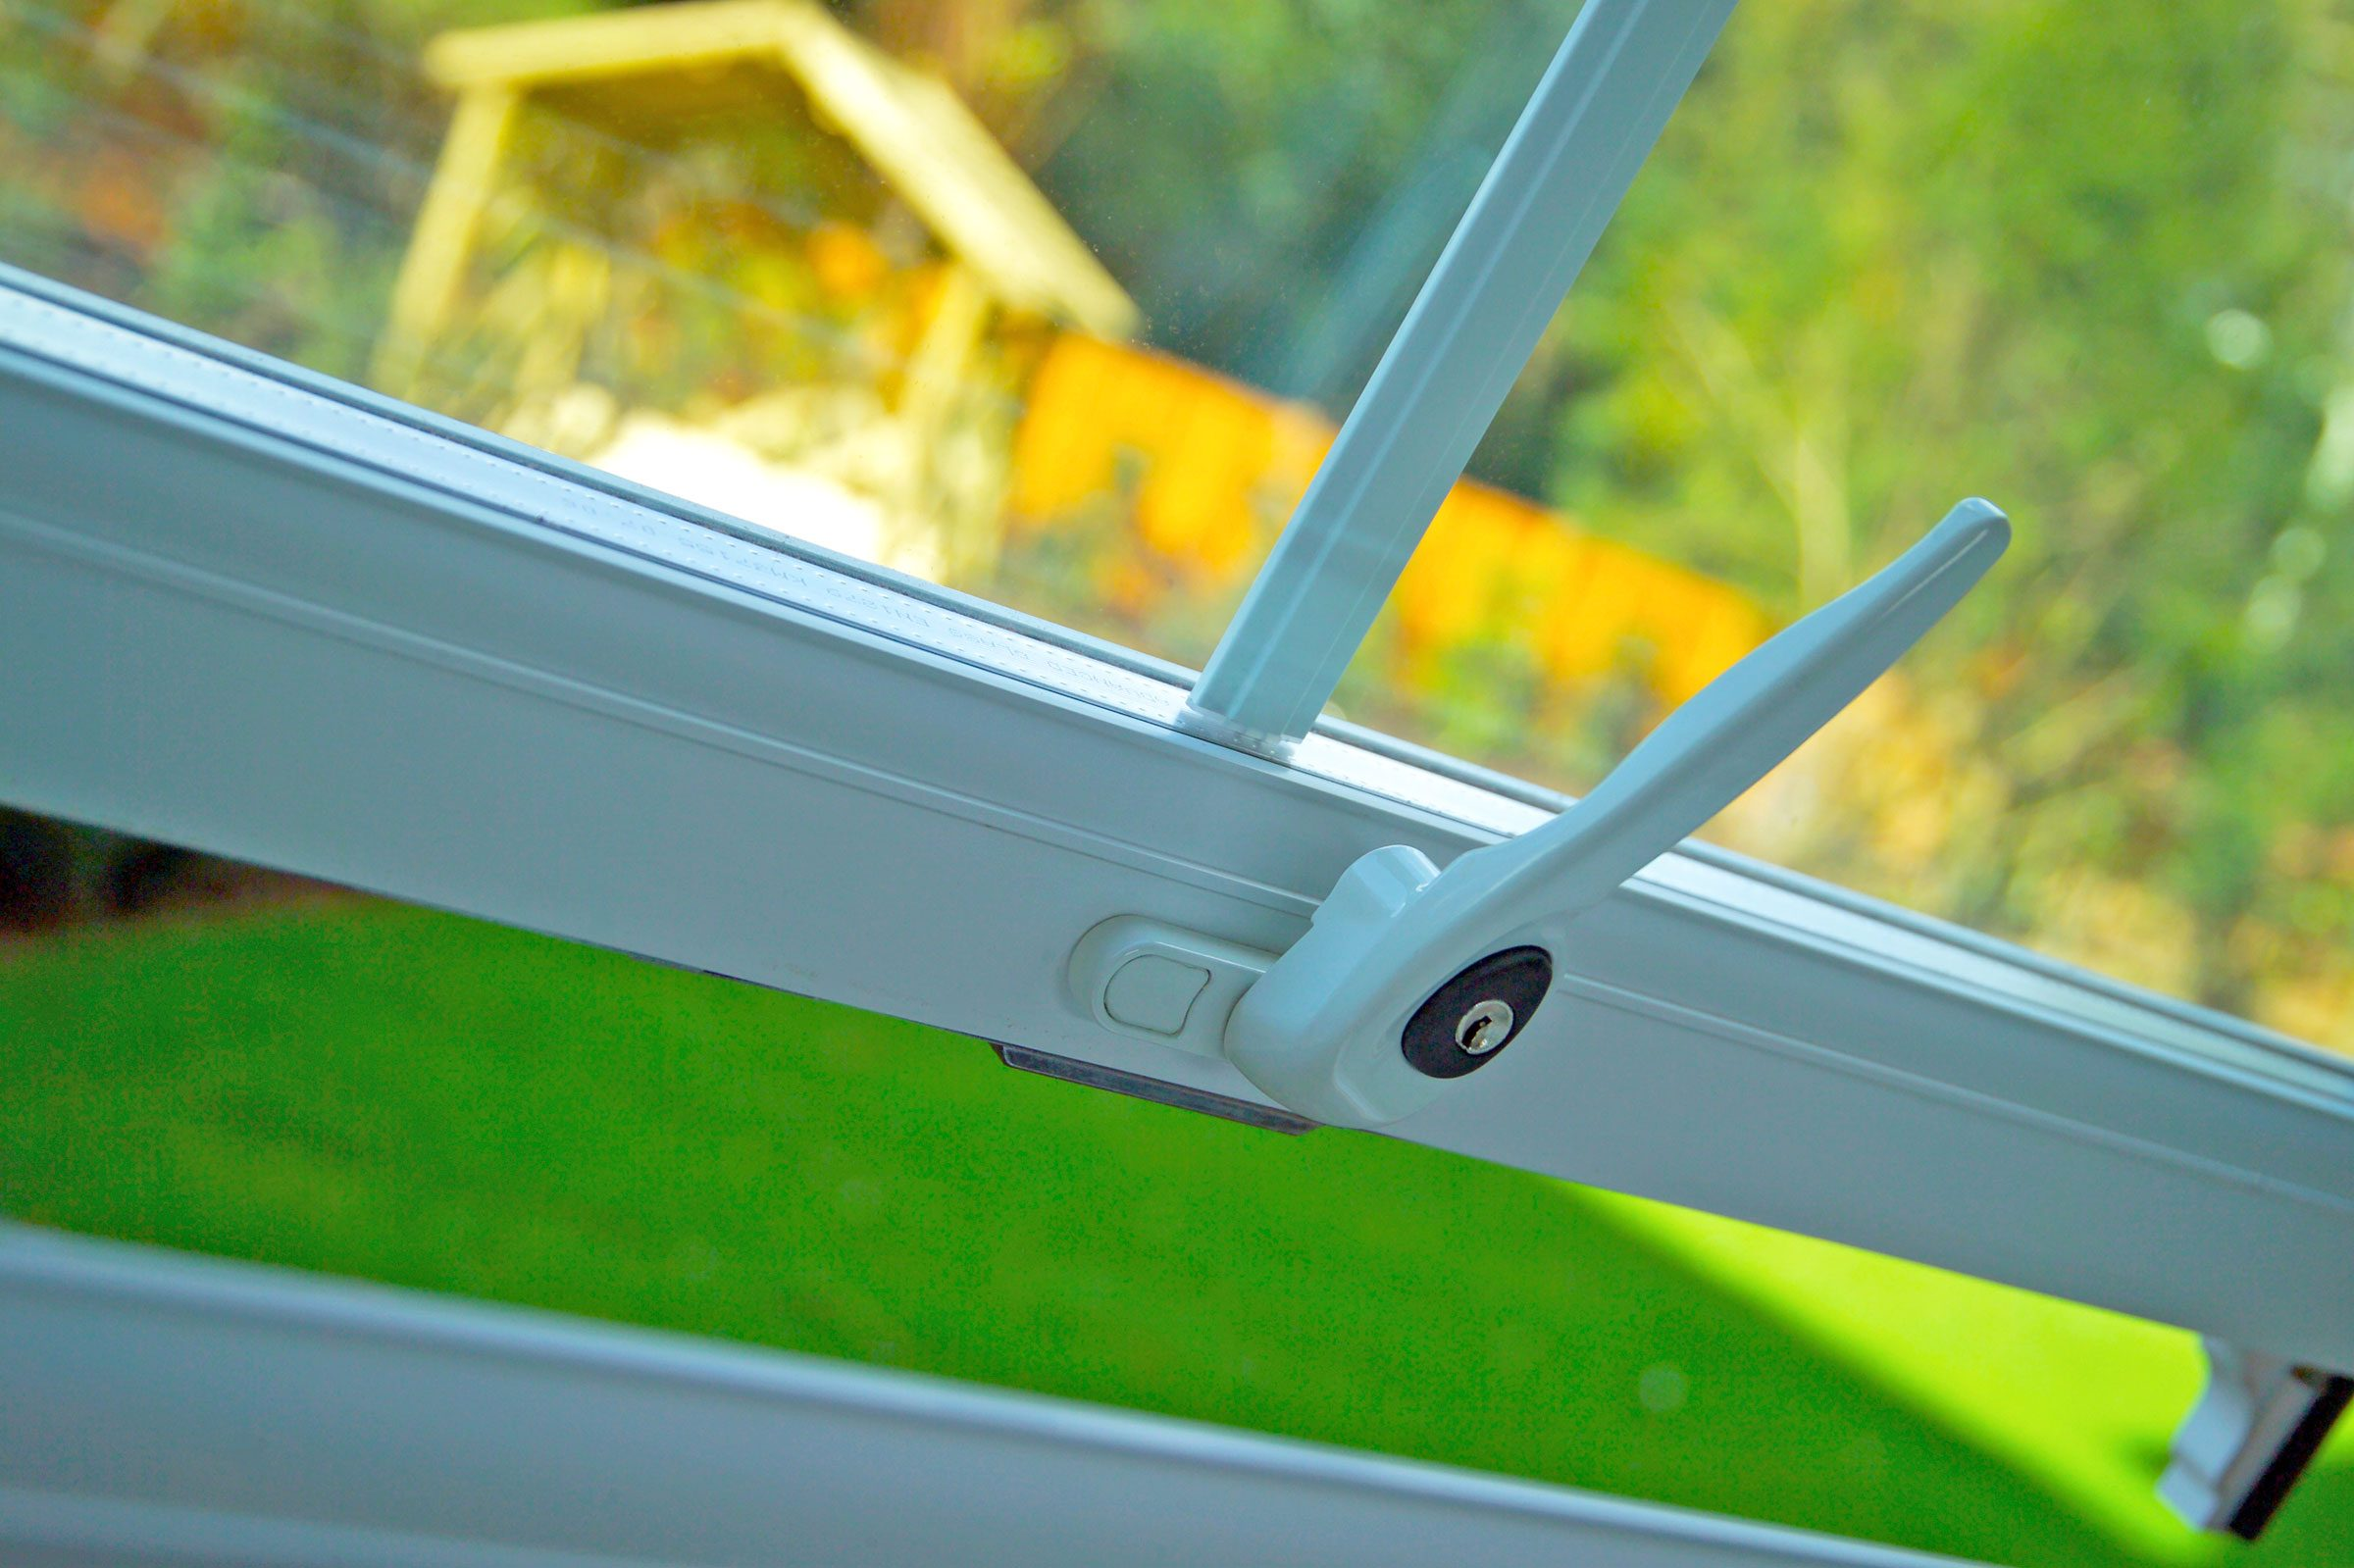 10. If a yard worker or unknown  visitor uses the bathroom, he may unlatch the window so he can gain entry later.